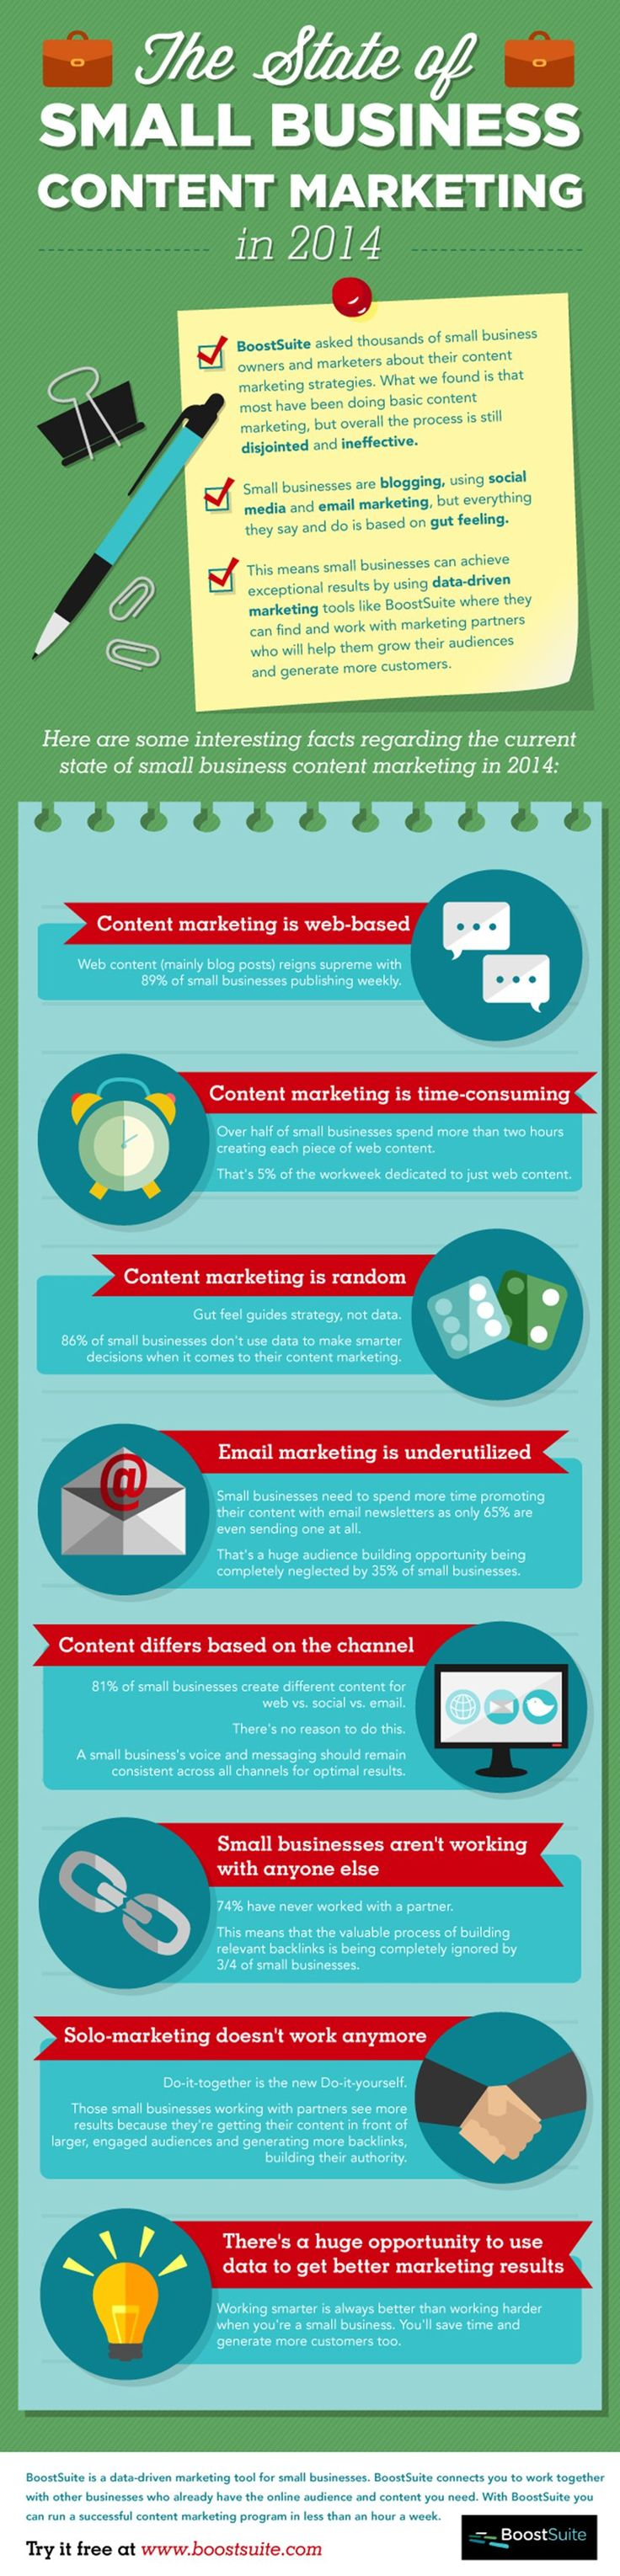 The State of Small Business Content Marketing in 2014 infographic - Small business can achieve exceptional results by using data-driven marketing tool that will help them grow their audiences